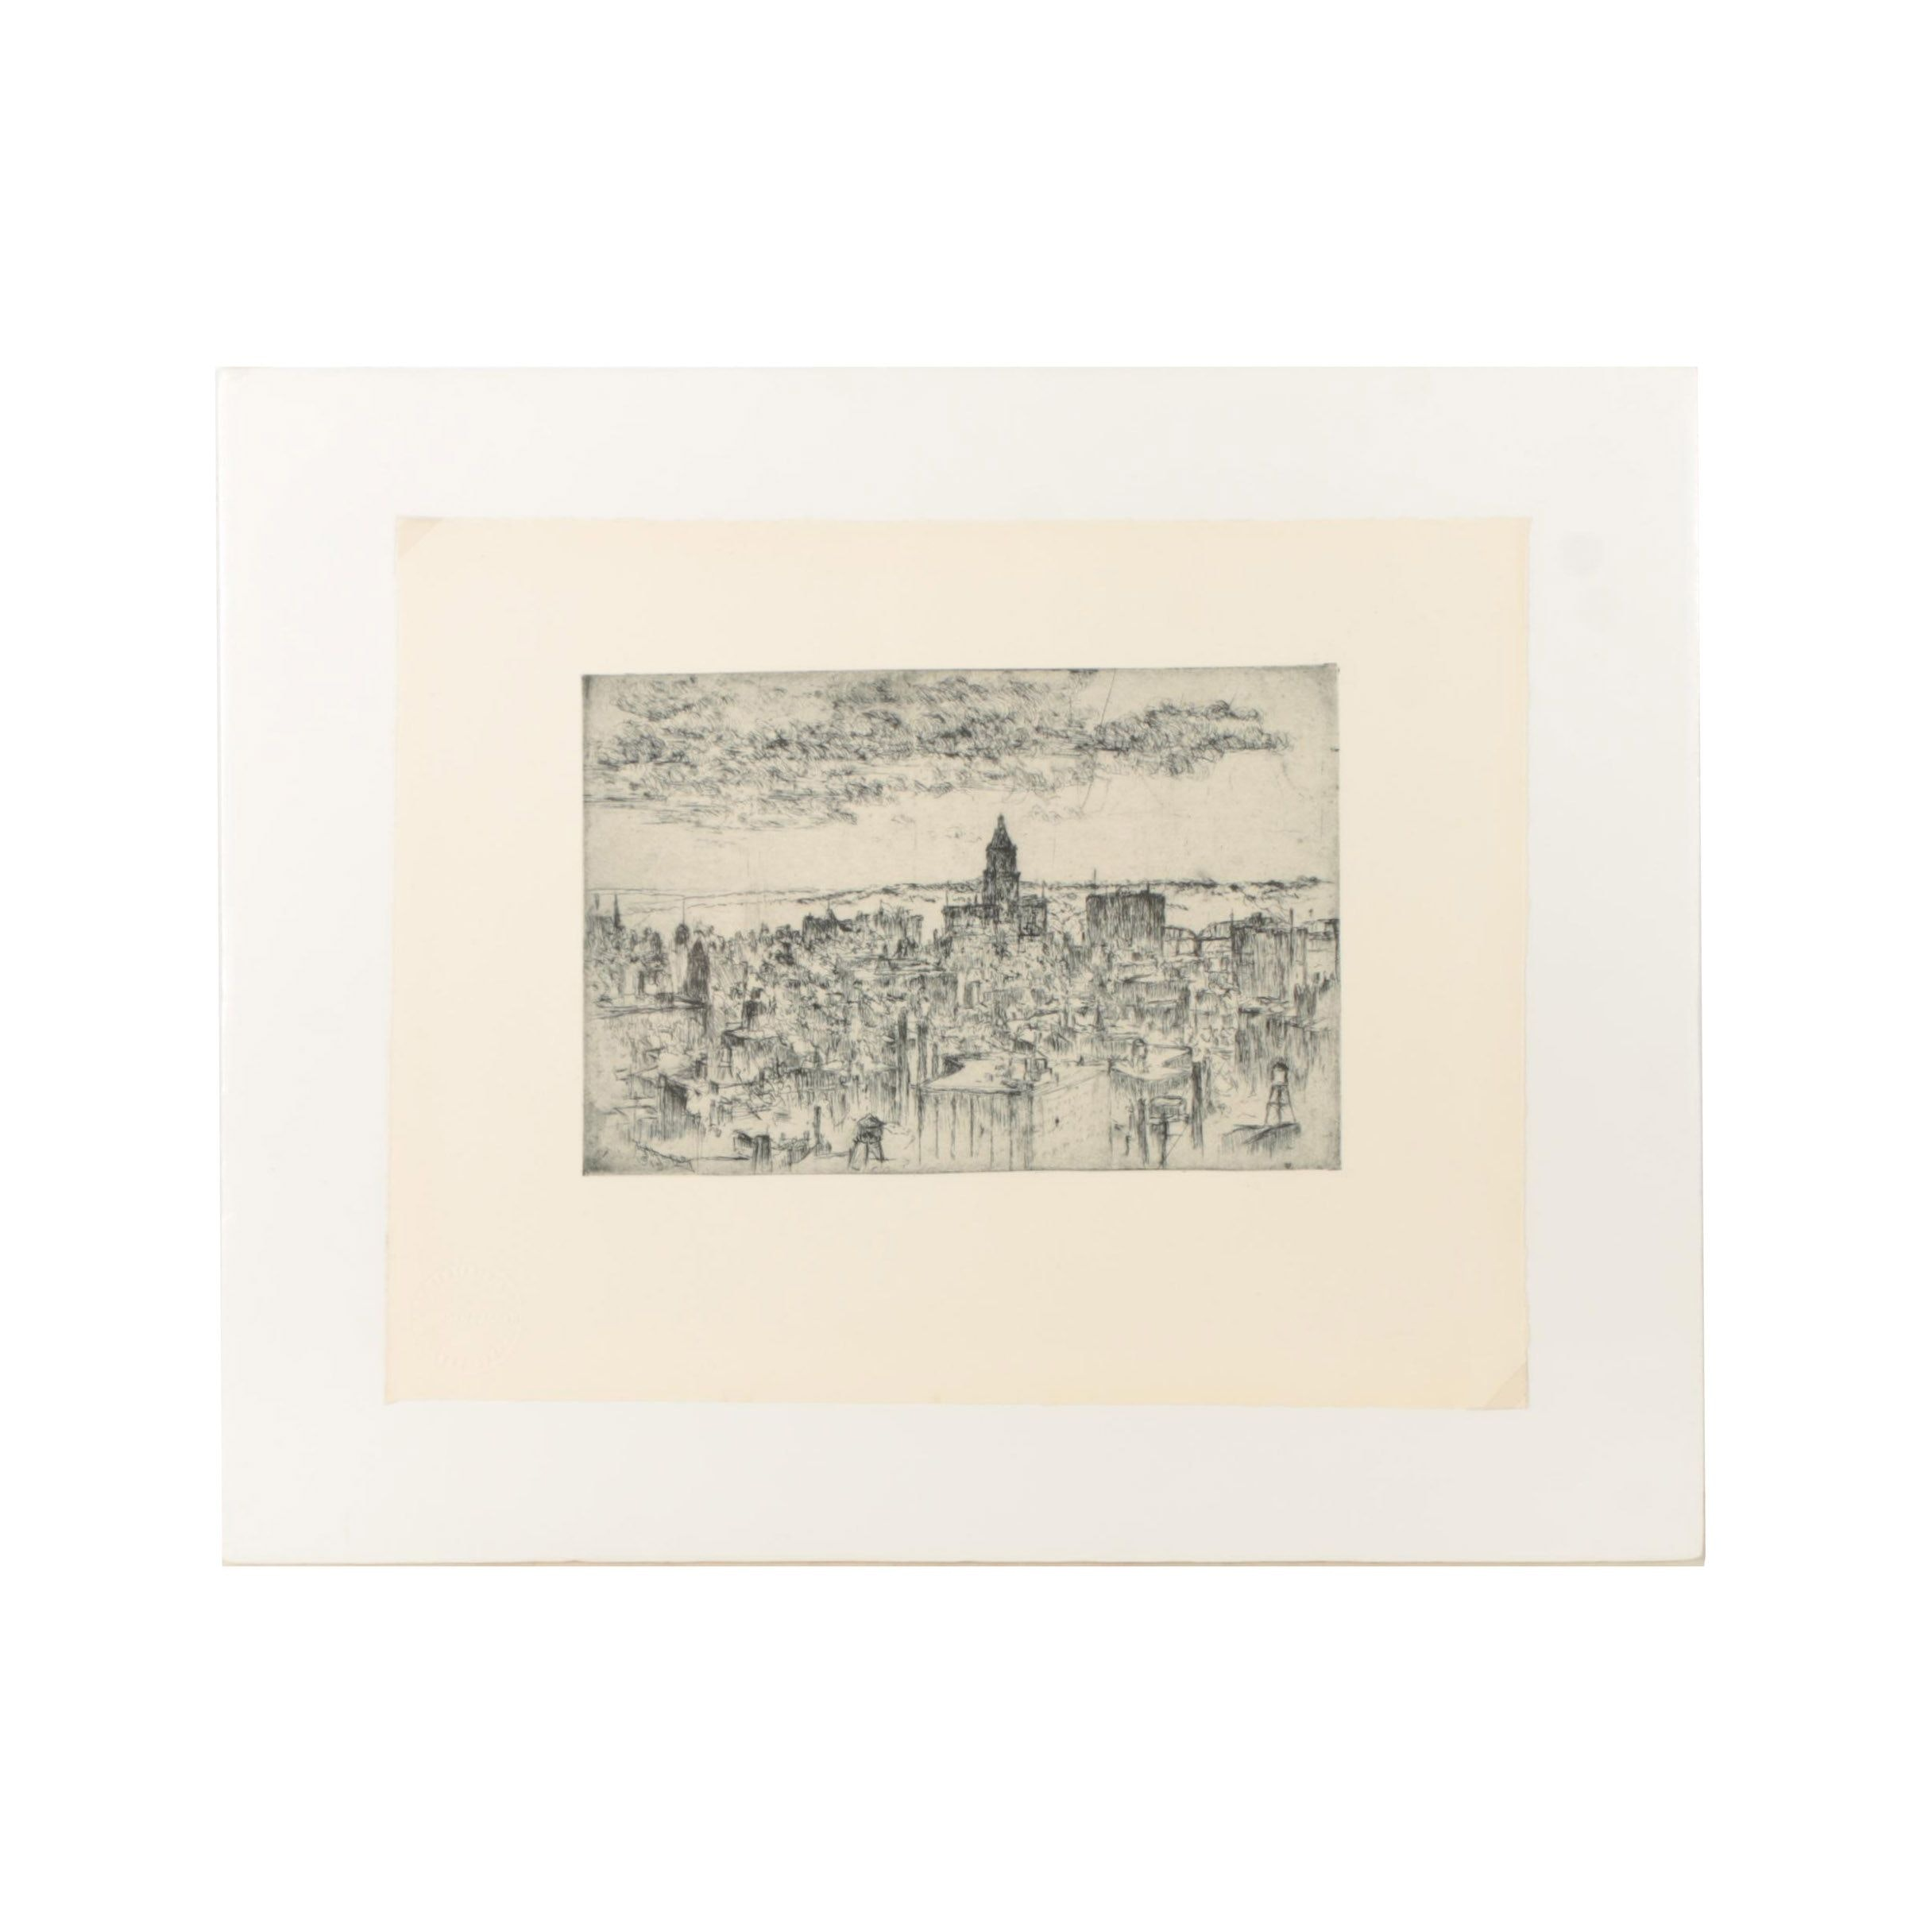 Edward T. Hurley Drypoint Etching on Paper Cityscape